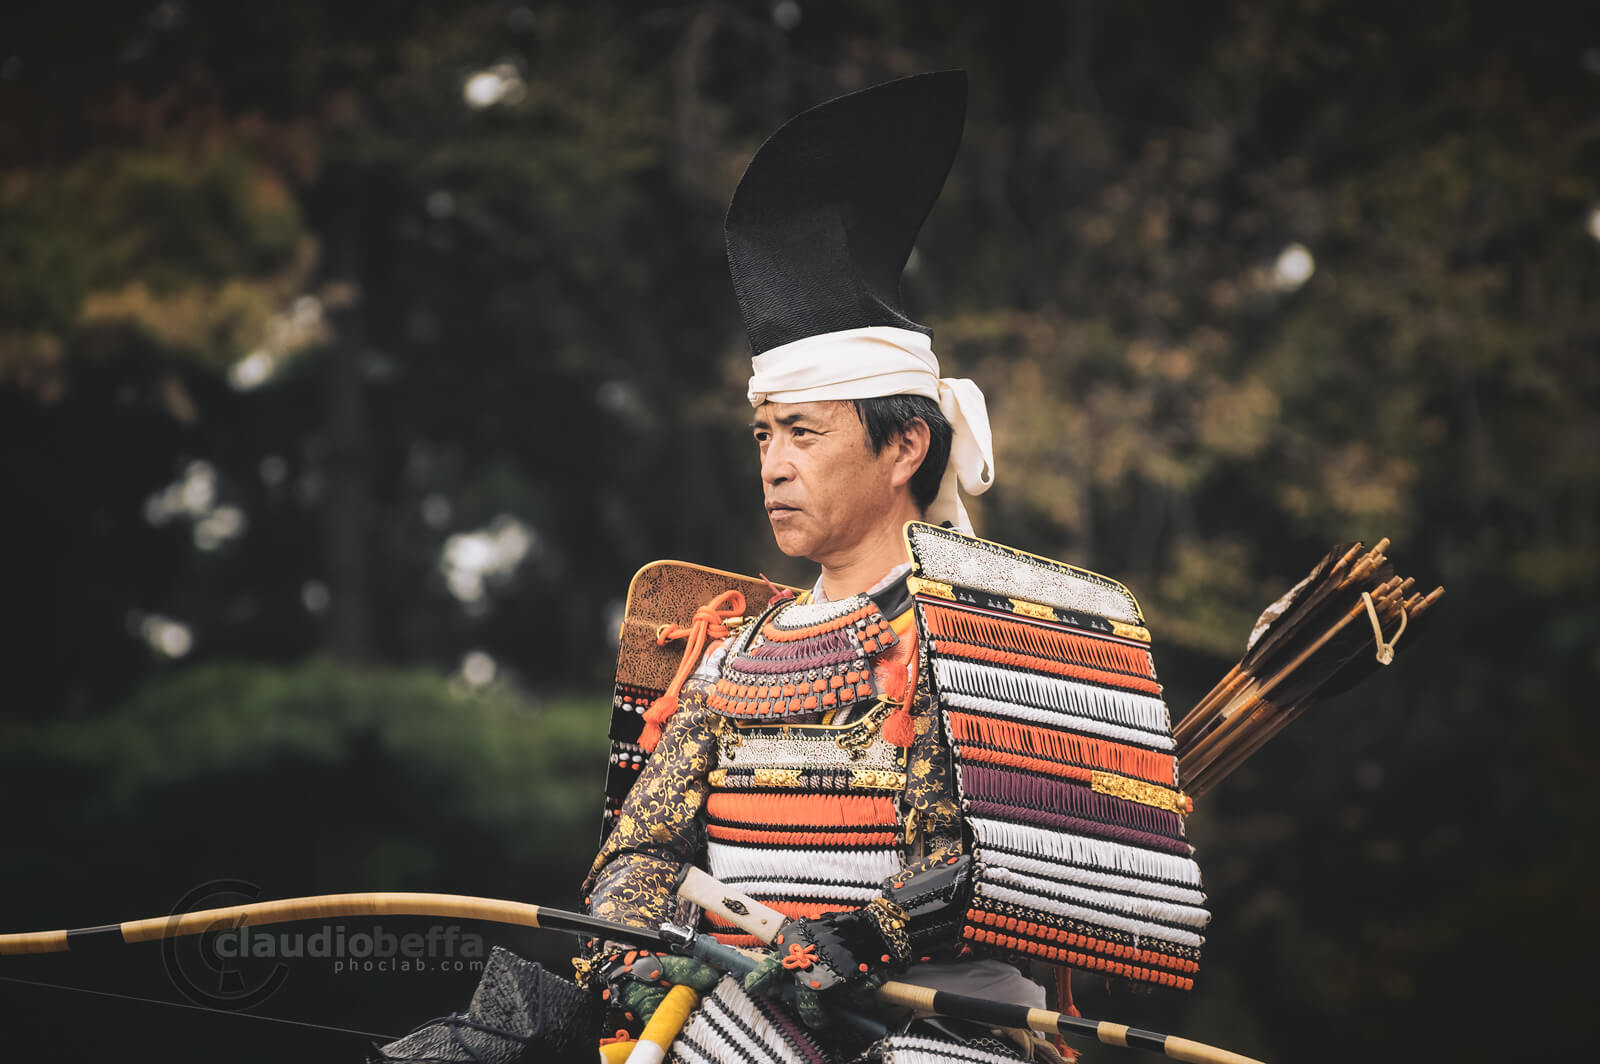 Mandokoro Shitsuji: samurai deputy of the shogunate. Yoroi, Armor, Yumi, Longbow, Jidai Matsuri, Festival, Kyoto, Japan, History, Tradition, Travel.